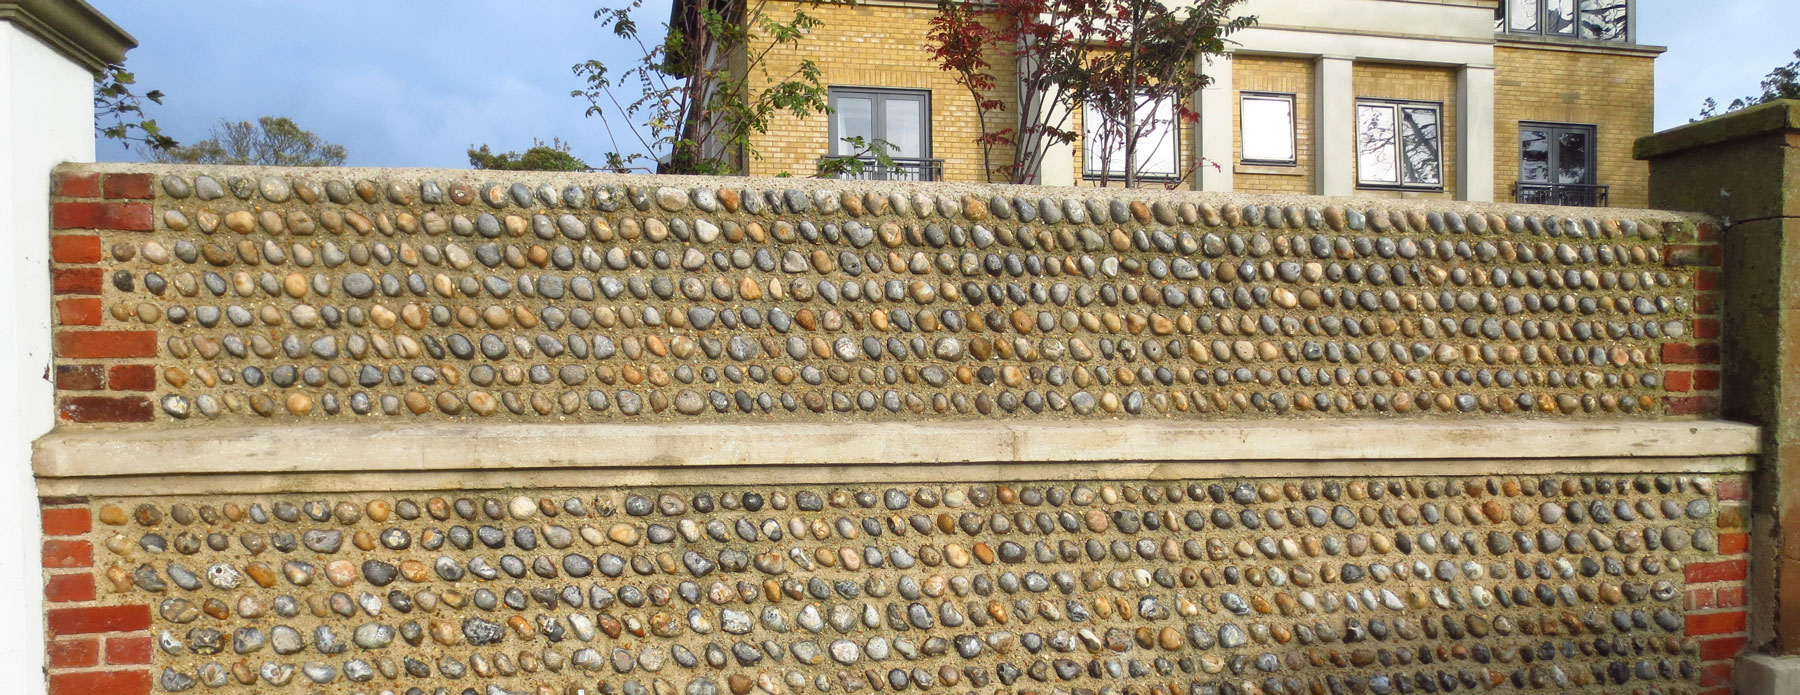 cobble wall - worthing